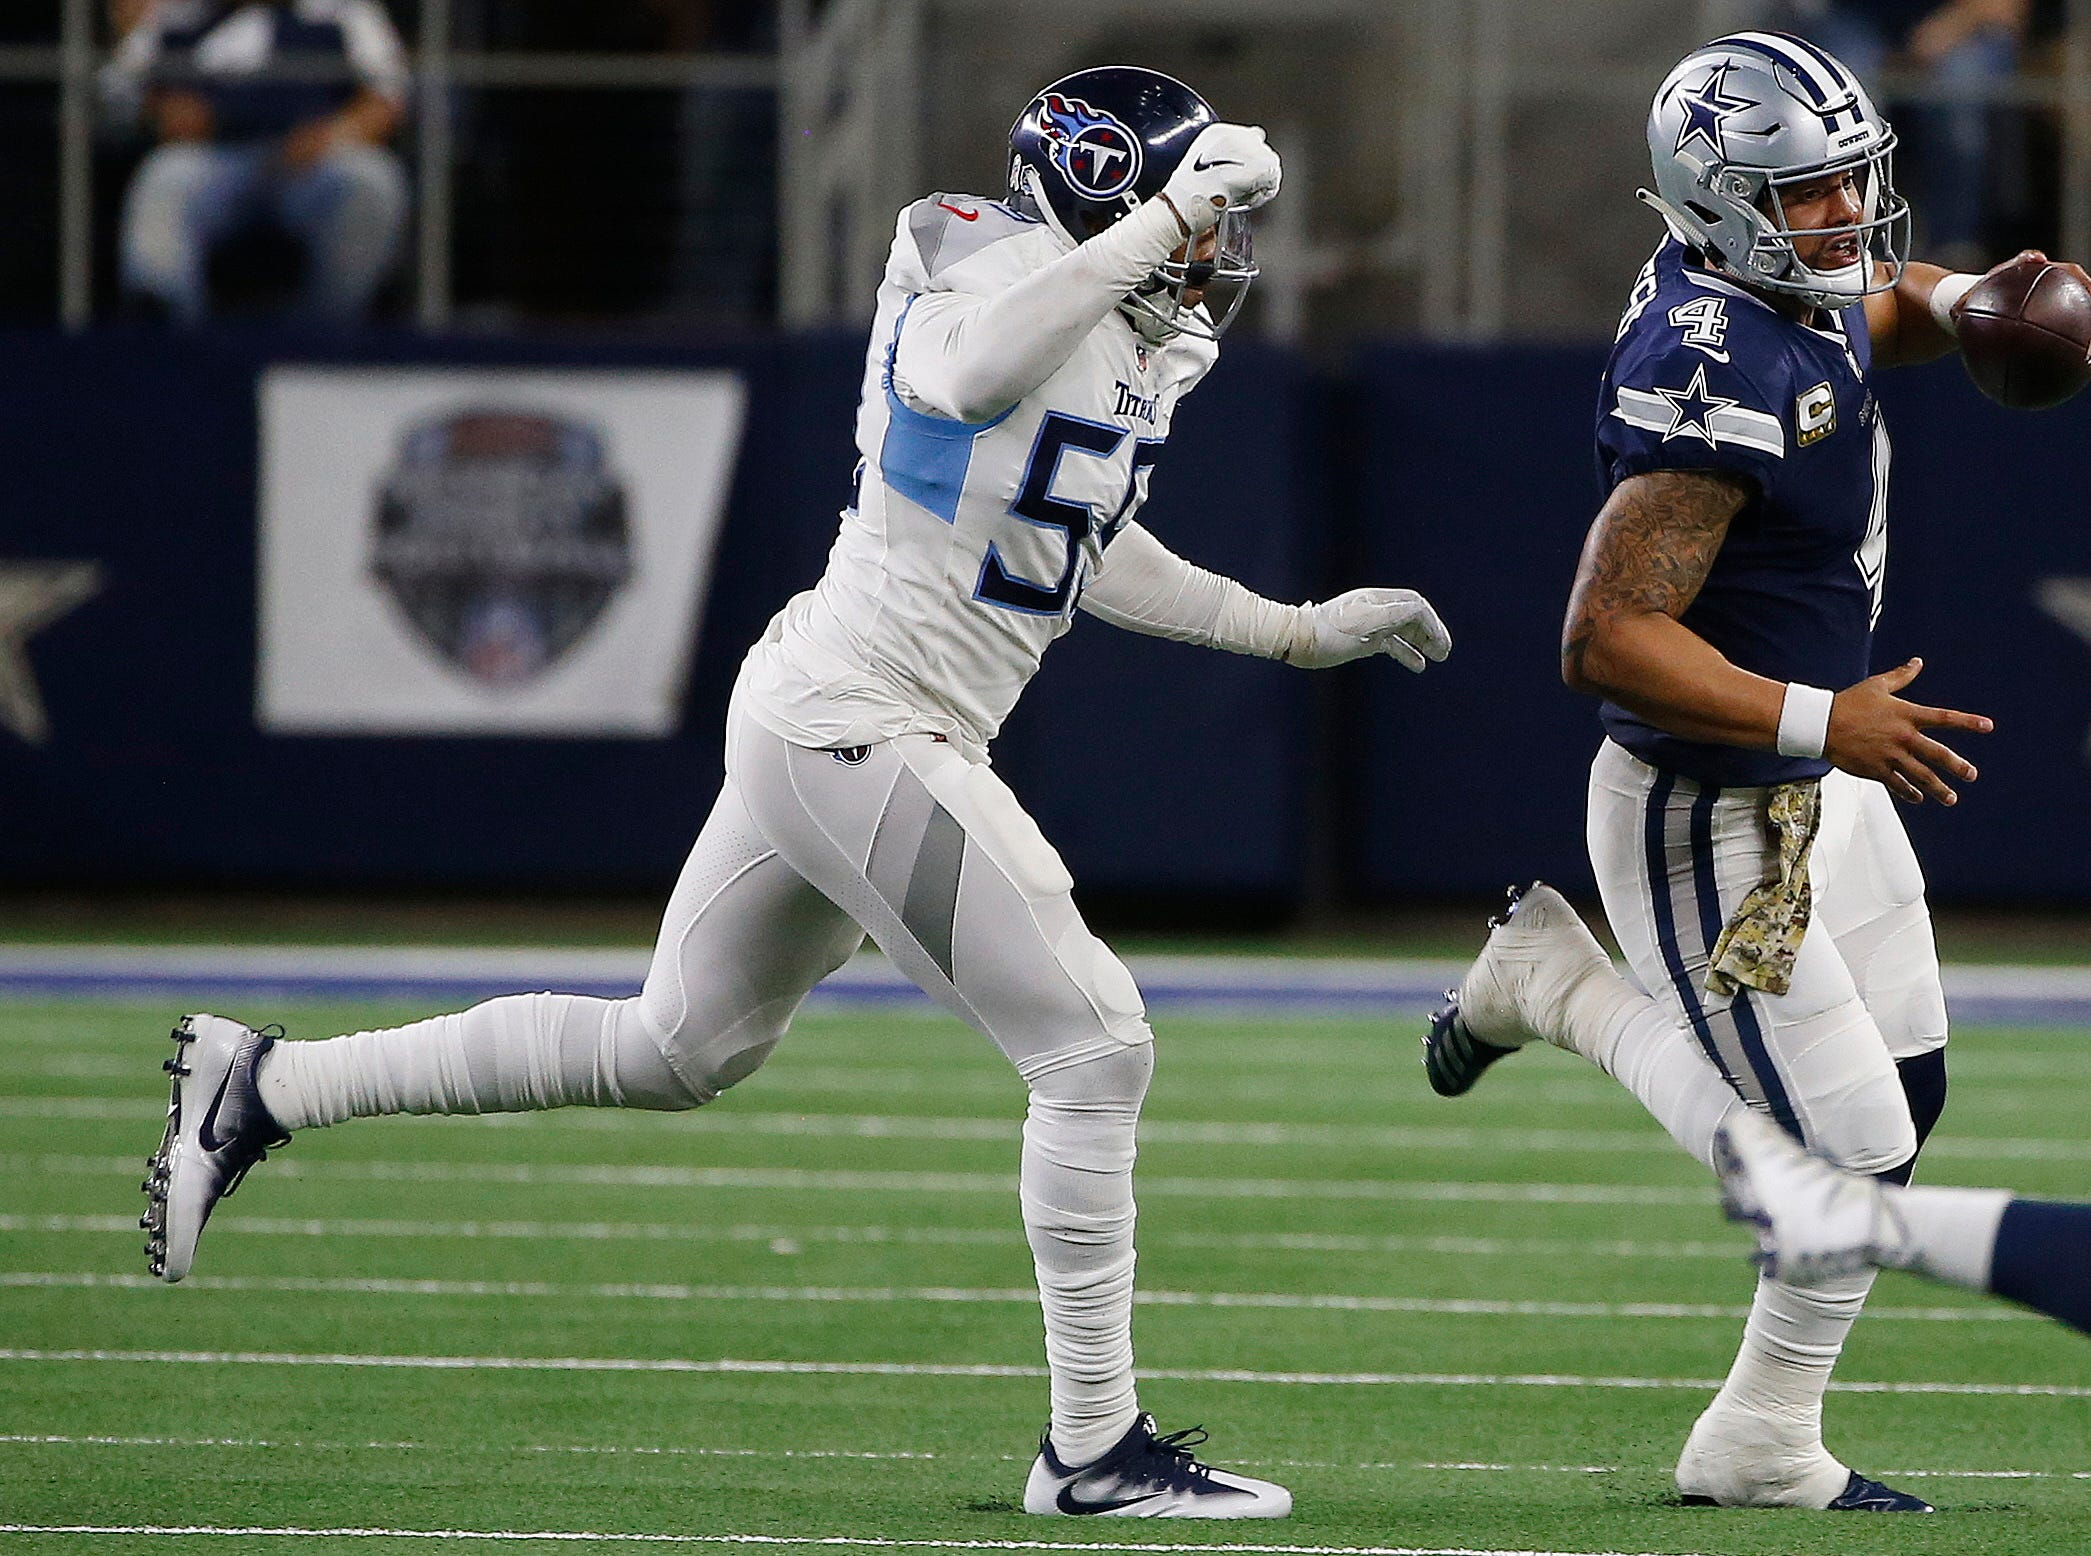 Dallas Cowboys quarterback Dak Prescott (4) is pursued by Tennessee Titans linebacker Jayon Brown (55) during the first half of an NFL football game, Monday, Nov. 5, 2018, in Arlington, Texas.